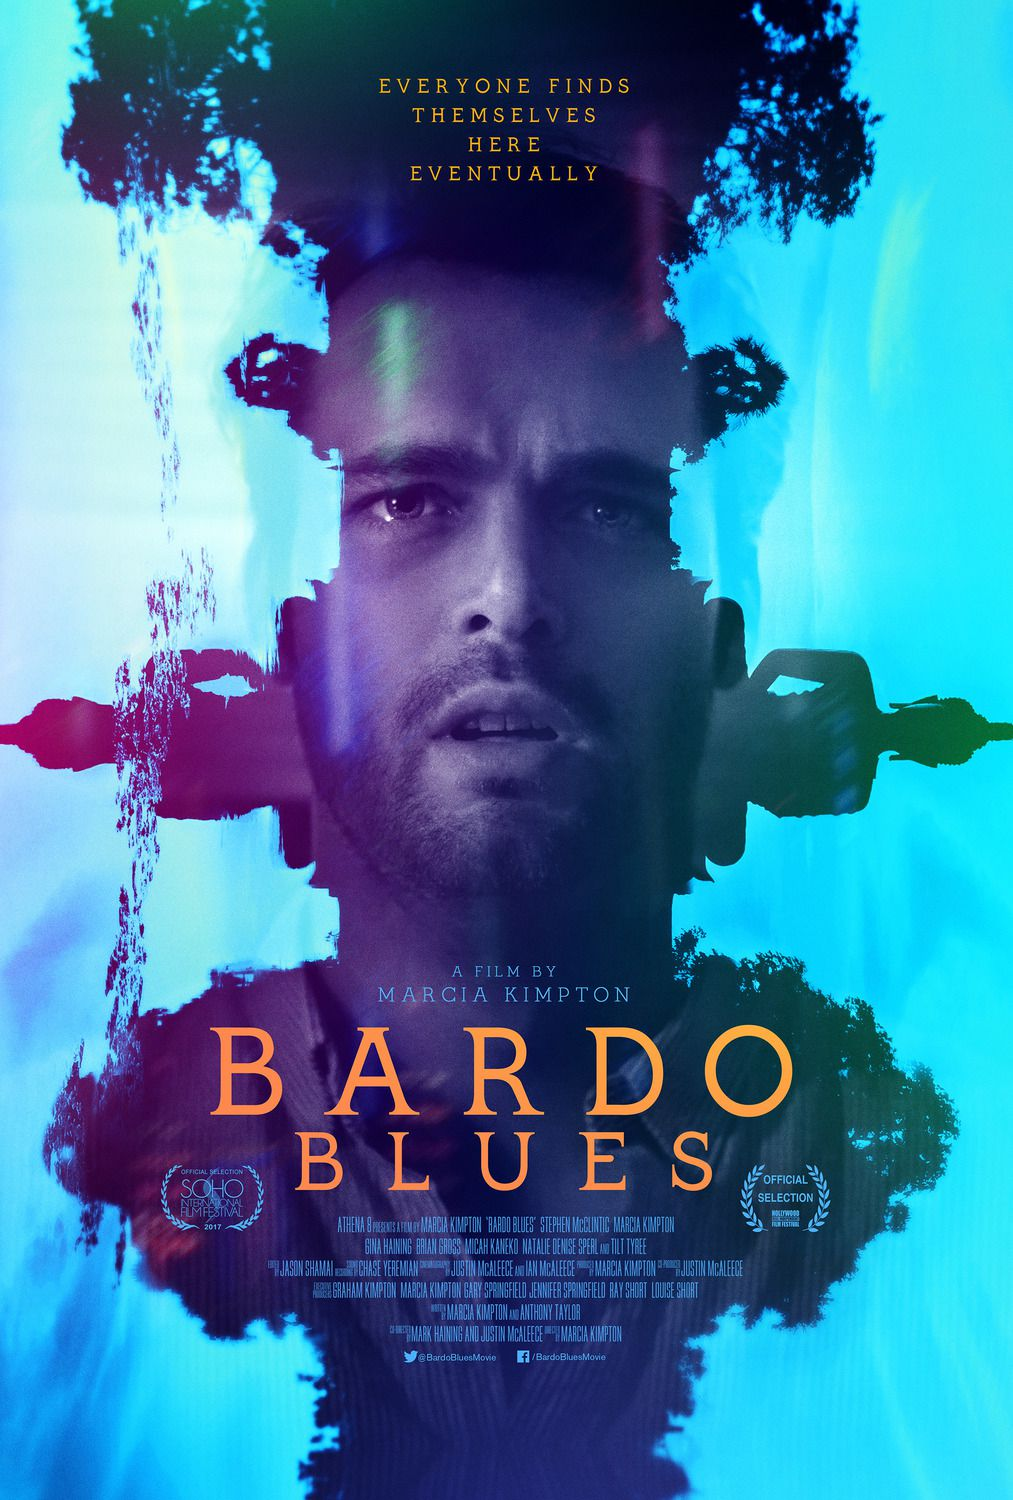 Bardo Blues (2019) - Everyone finds themselves here eventually - film poster